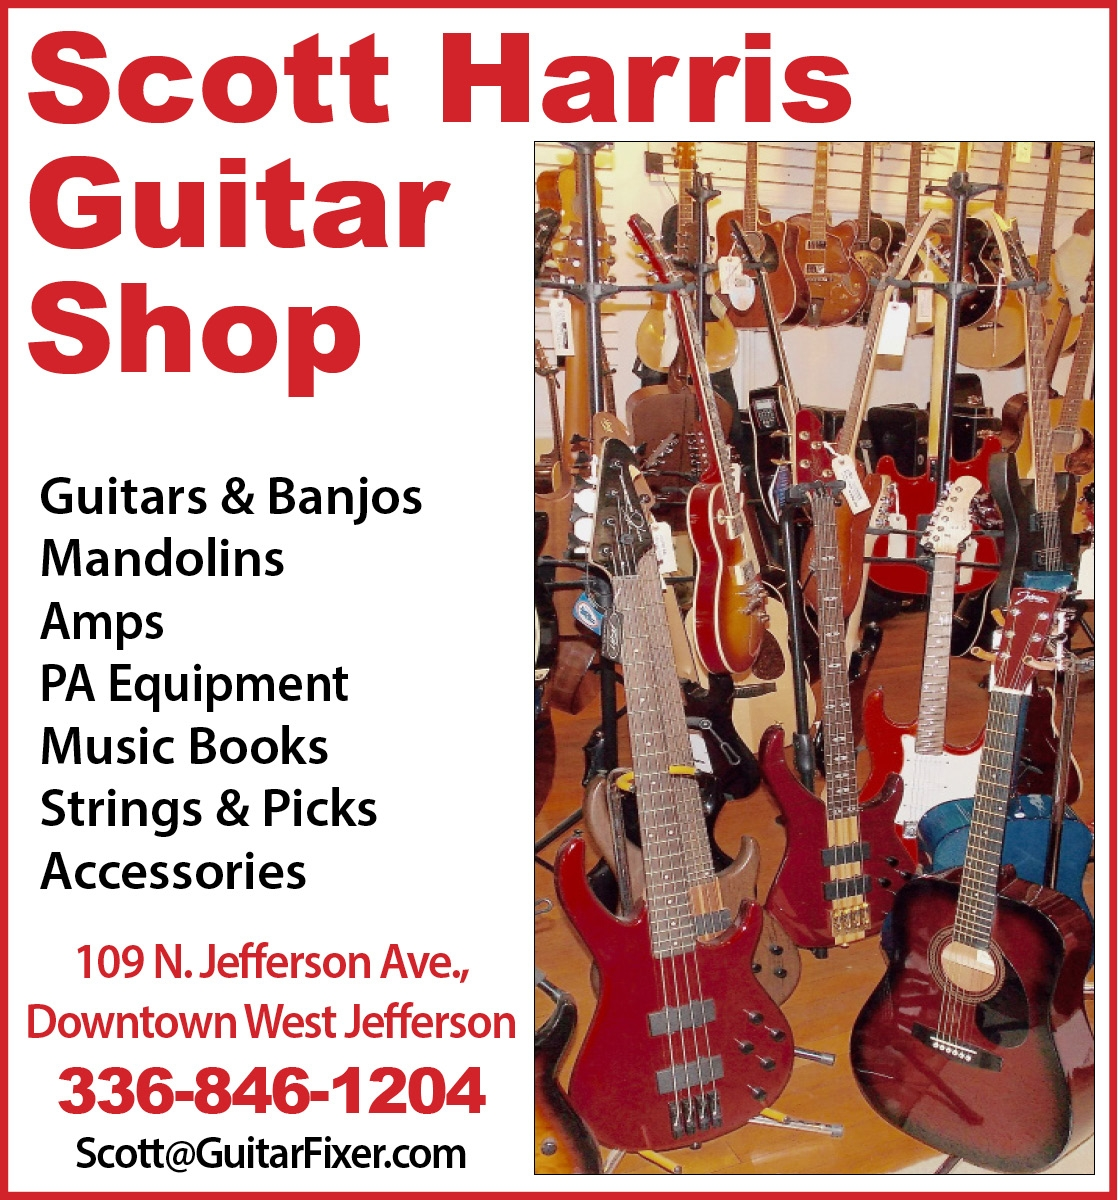 Scott Harris Guitar Shop